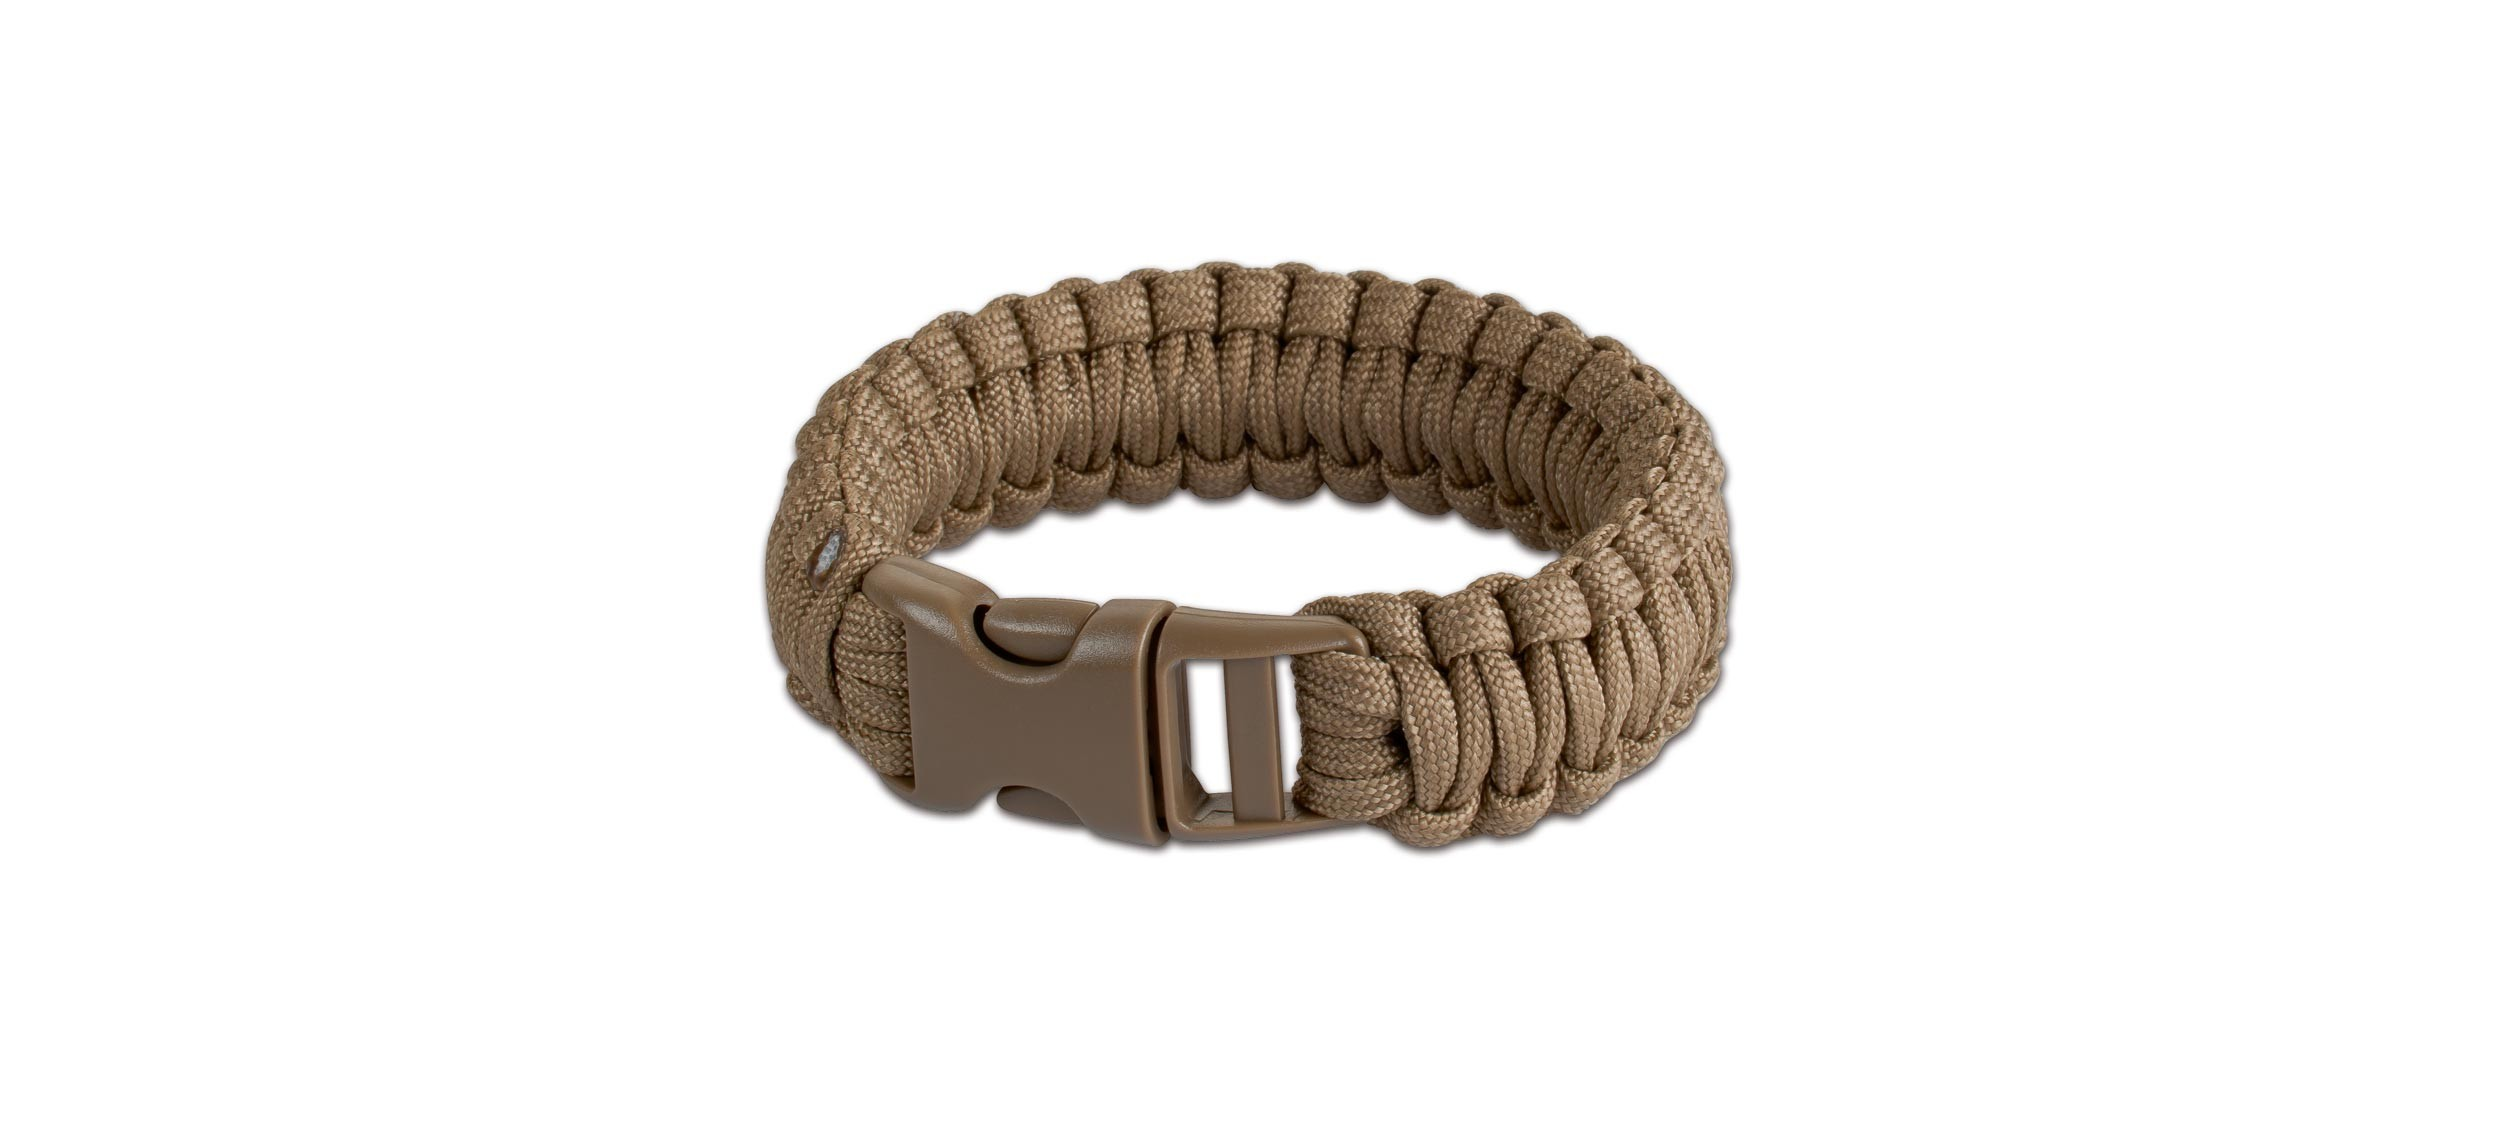 09JG242 - BOKER PLUS SURVIVAL BRACELET COYOTE 8